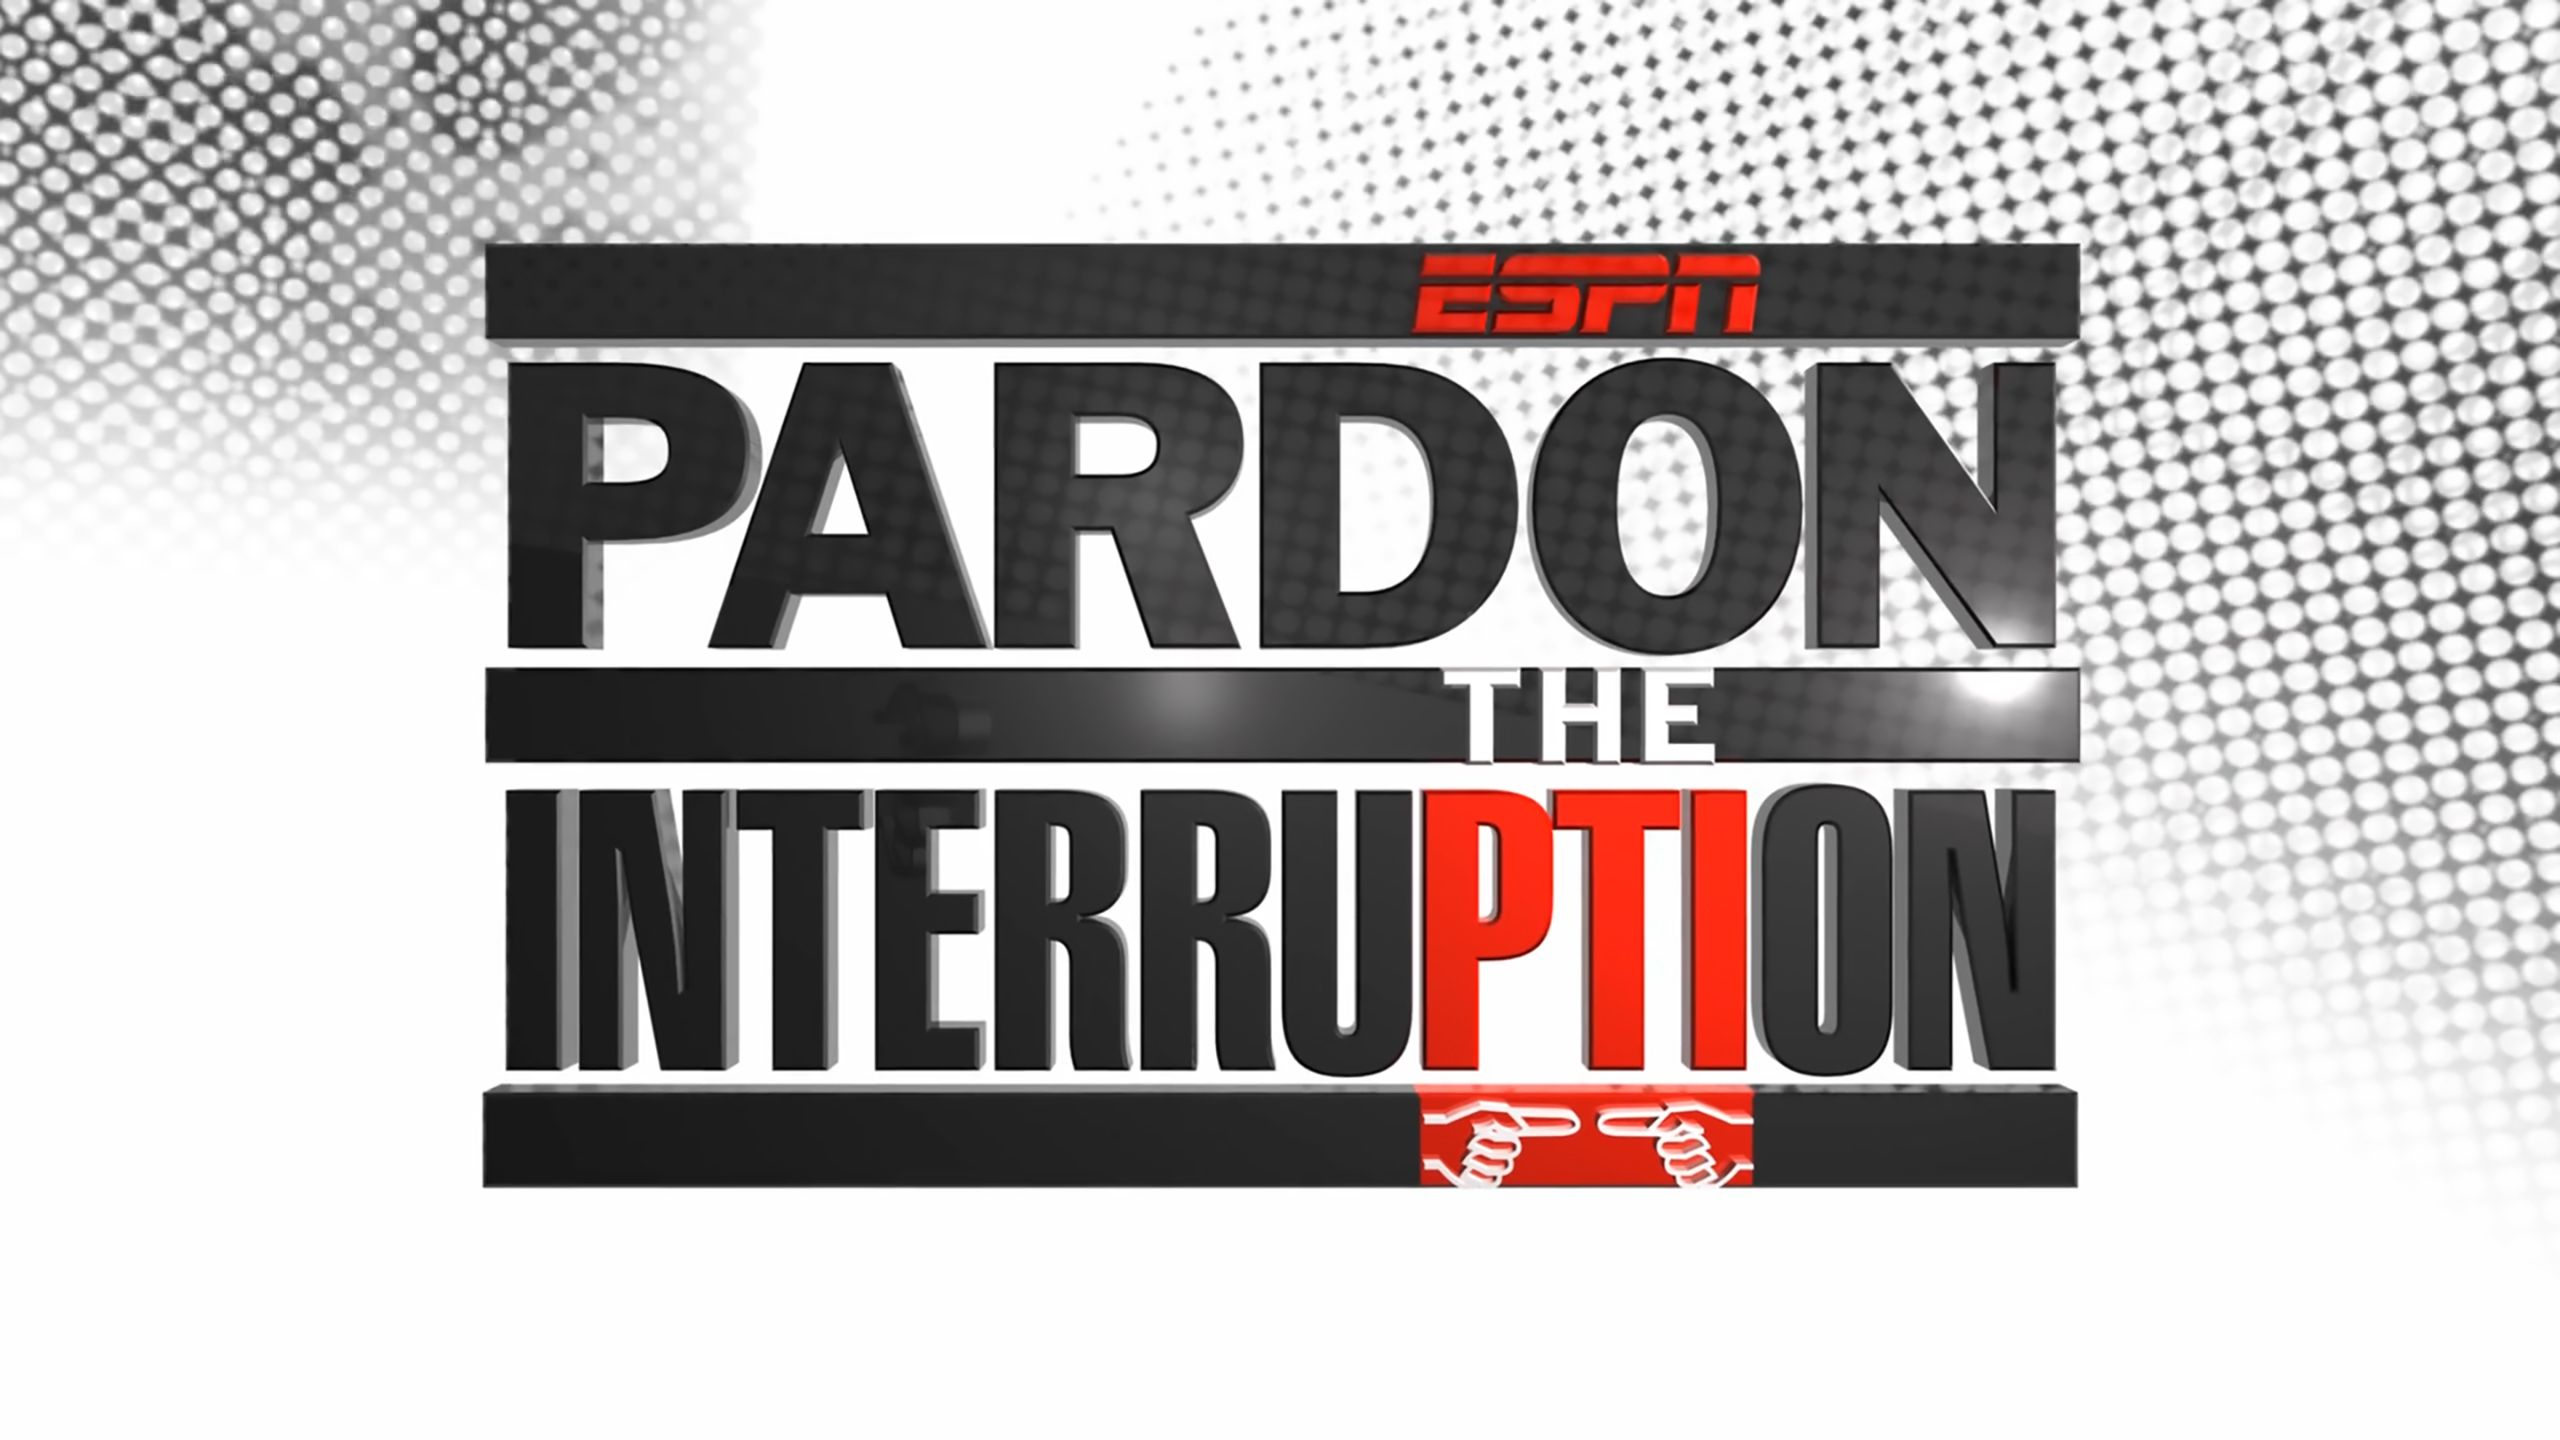 Wed, 11/22 - Pardon The Interruption